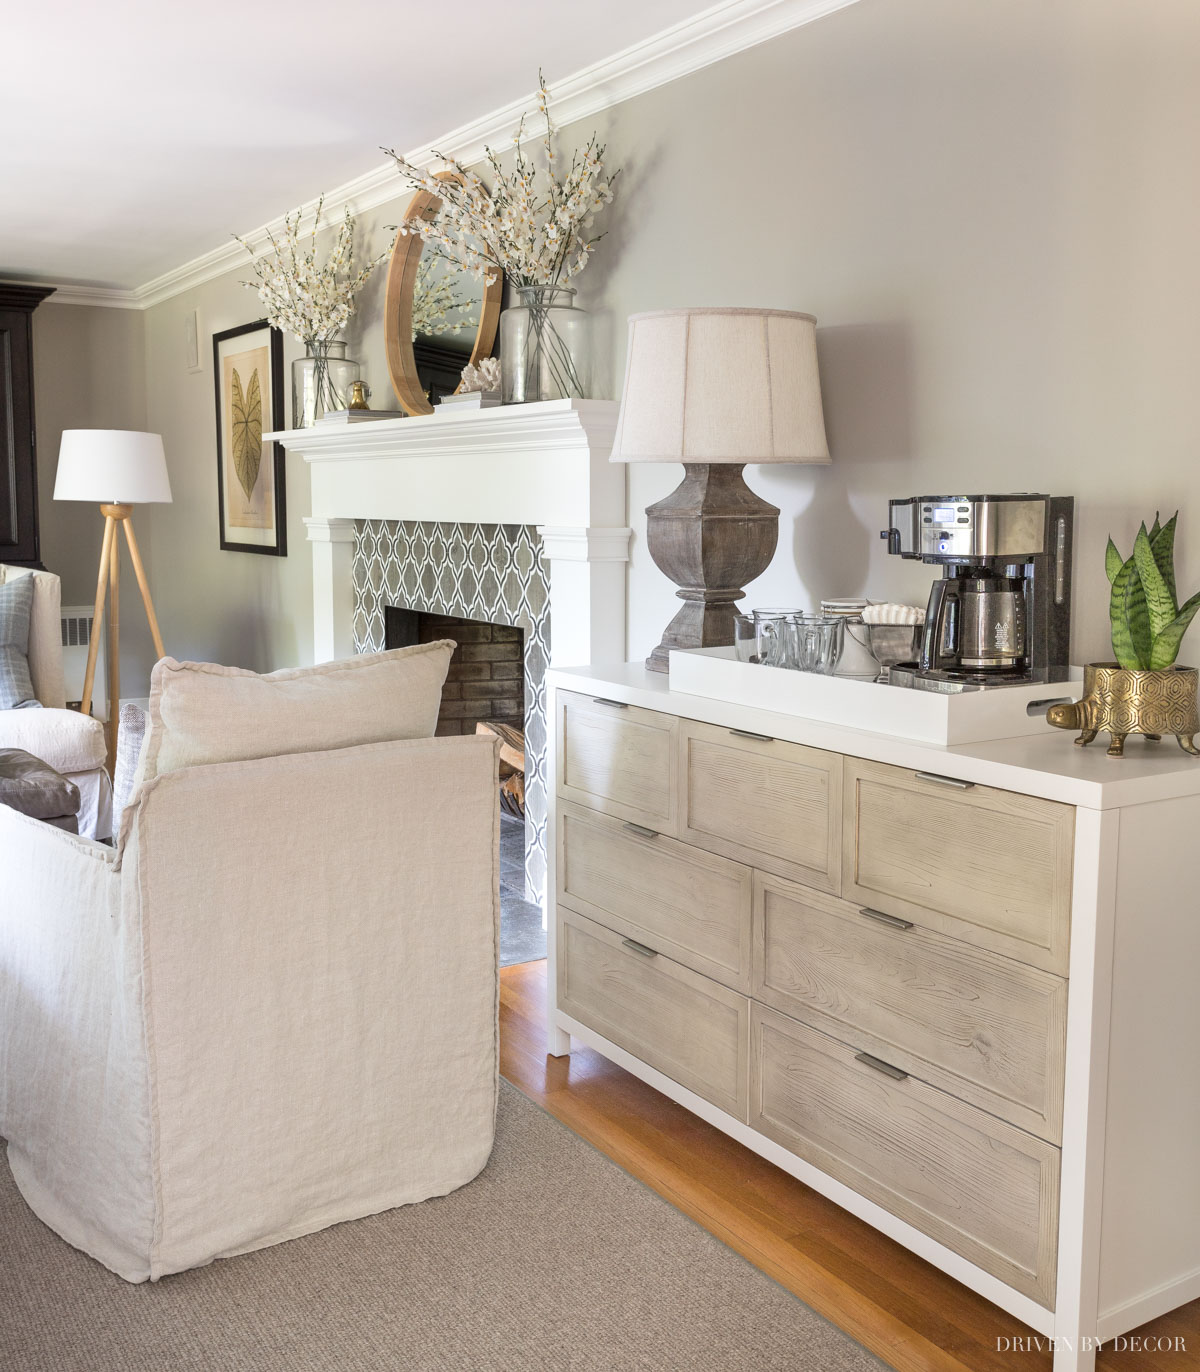 Sherwin Williams Anew Gray - a great greige paint color!